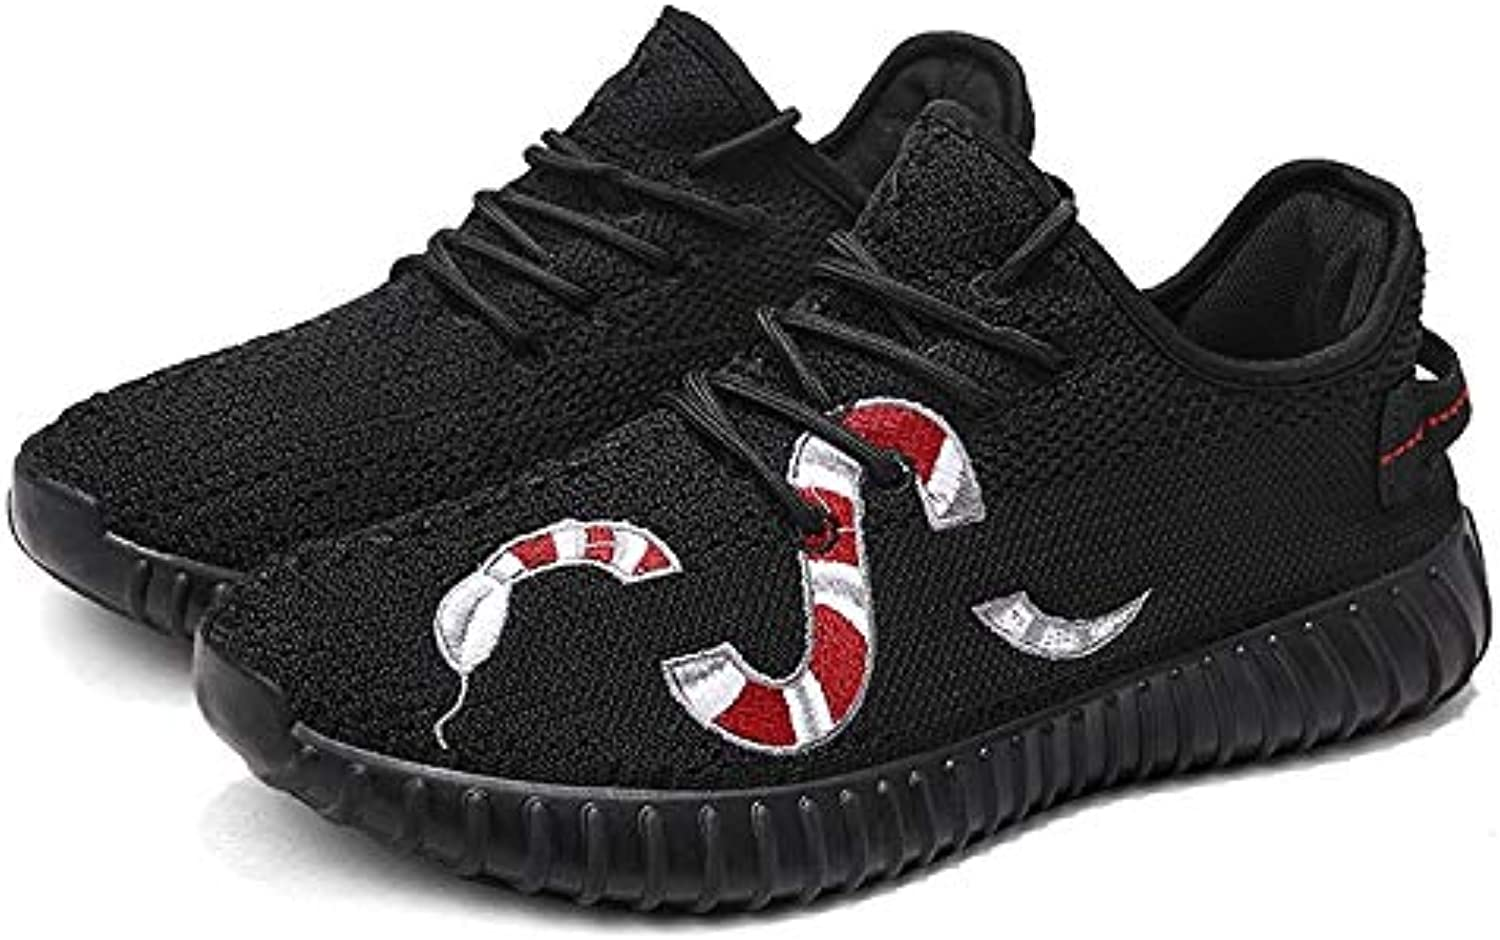 HAWEEL Casual Sports shoes Embroidery Snake Pattern Breathable Flat Heel Sports Casual shoes for Men (color Black Size 39)